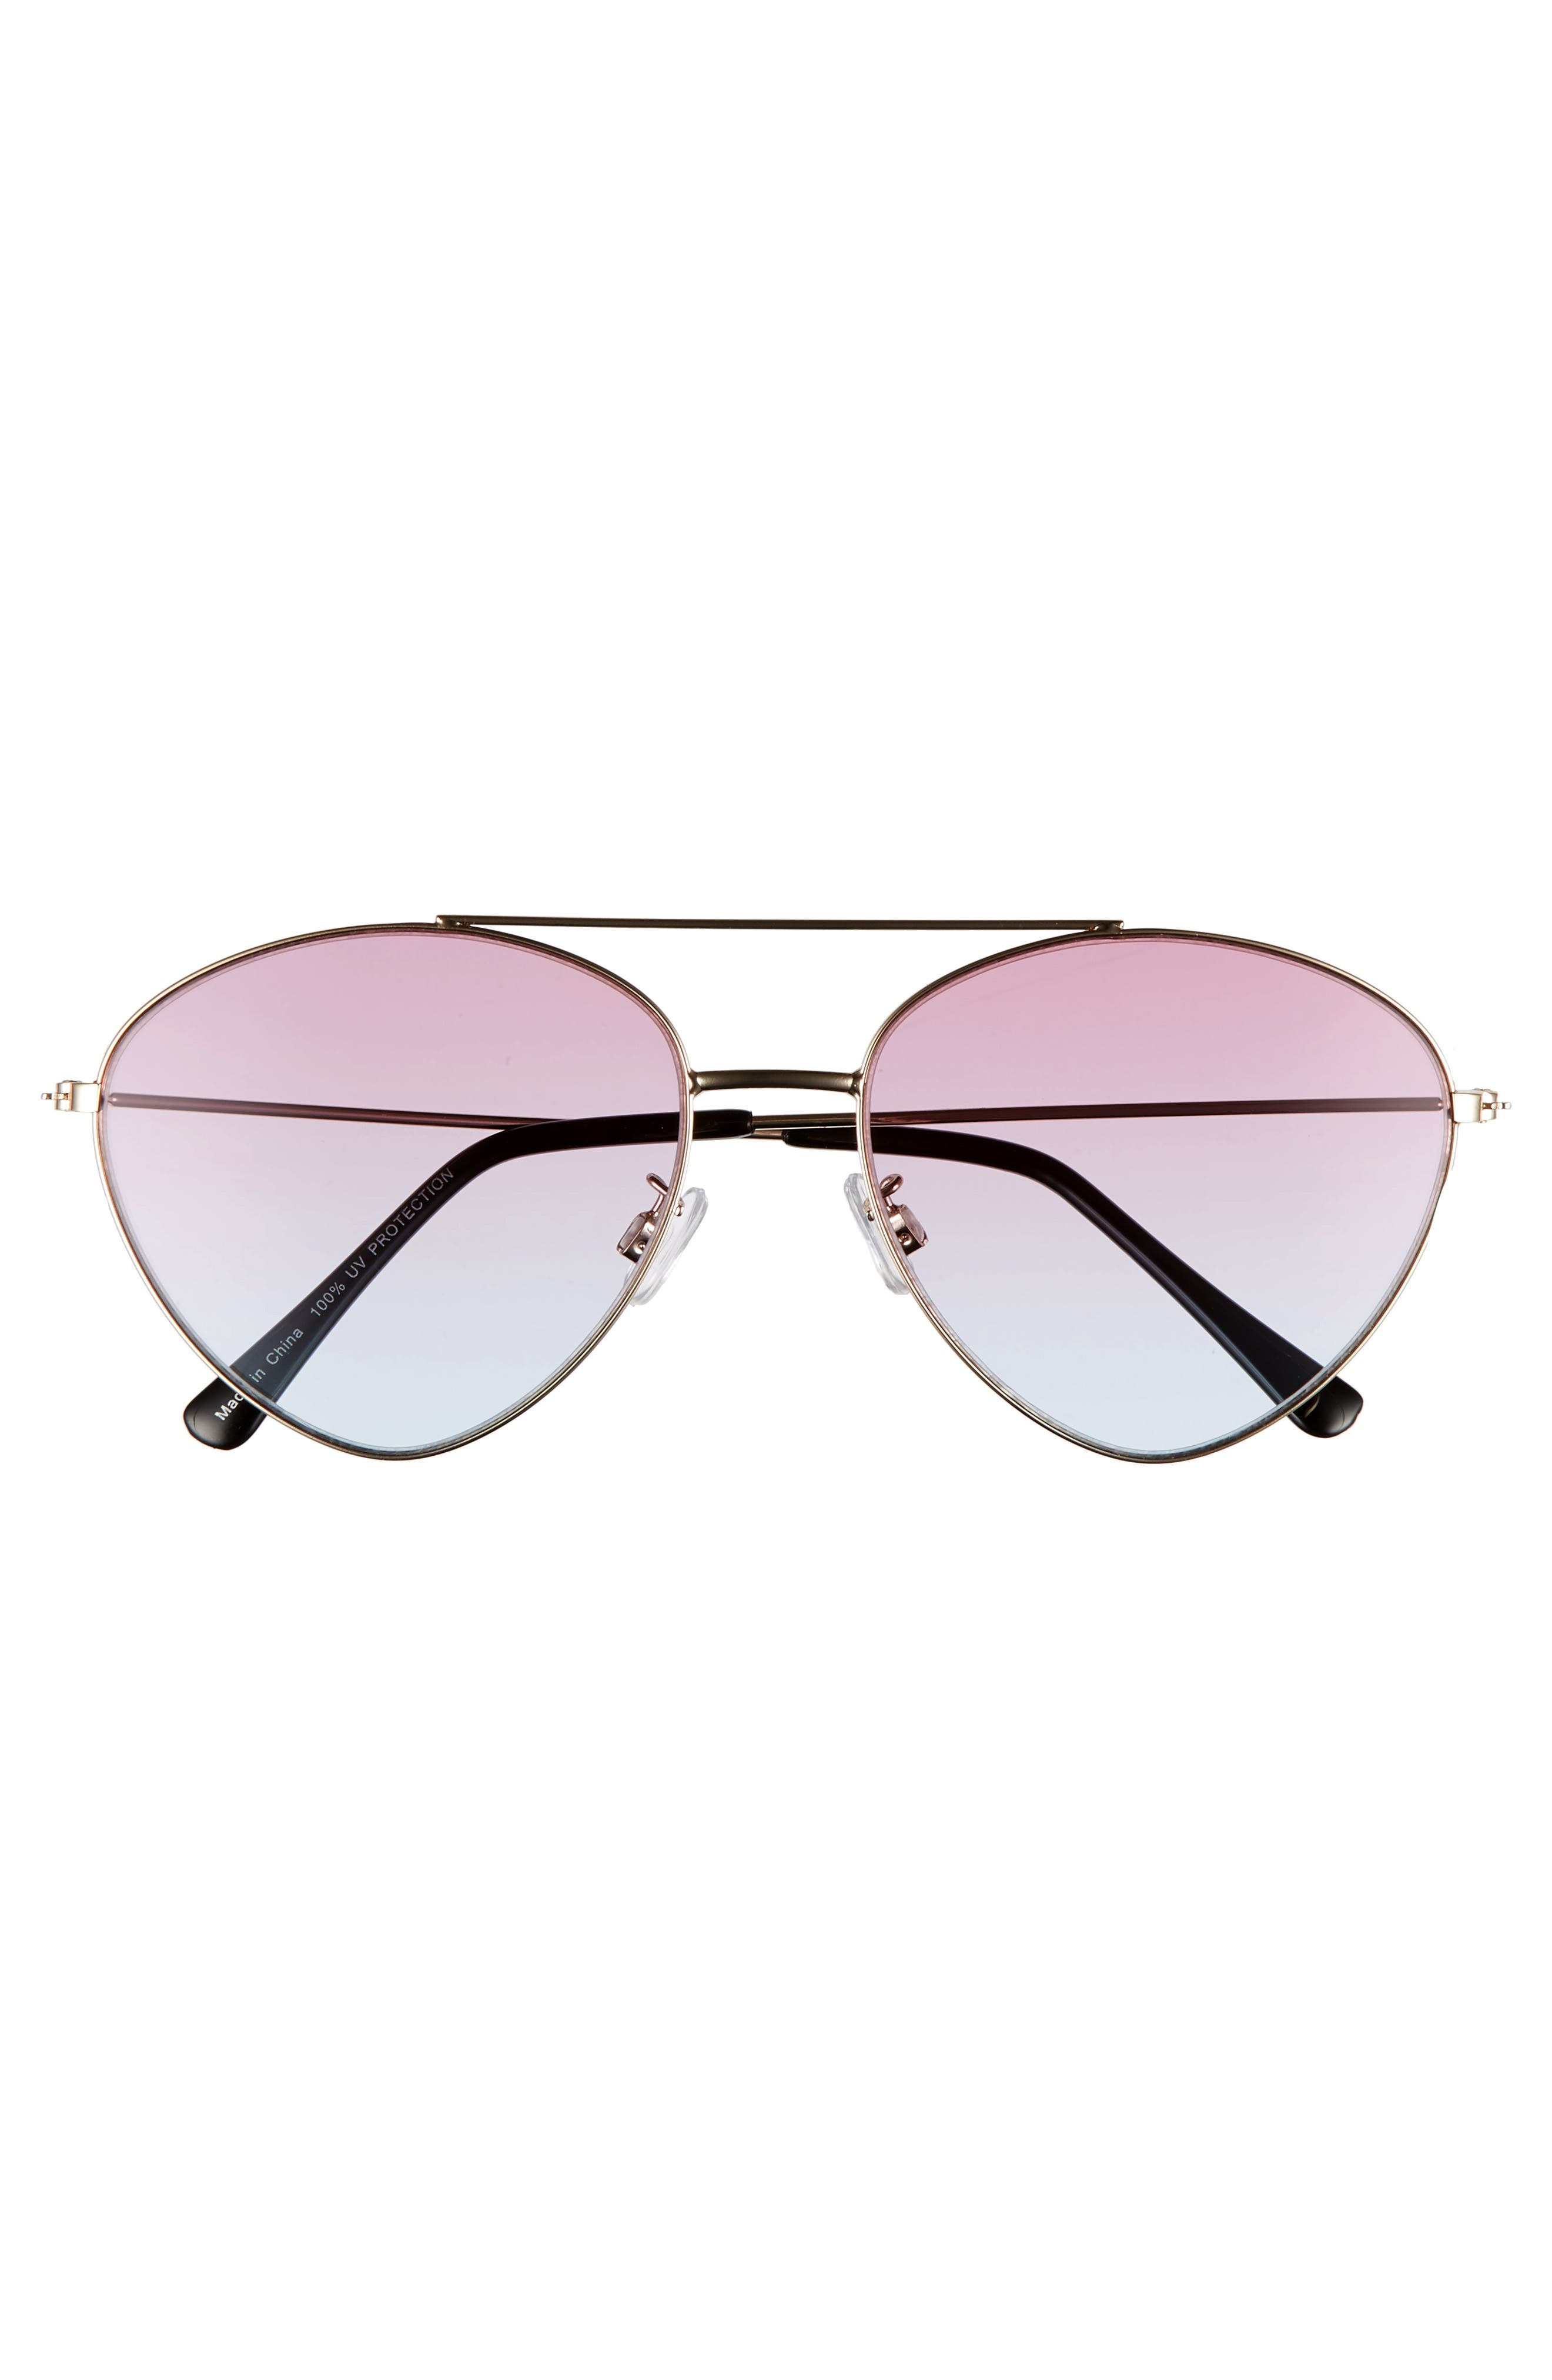 56mm Gradient Aviator Sunglasses,                             Alternate thumbnail 3, color,                             Gold/ Pink/ Blue